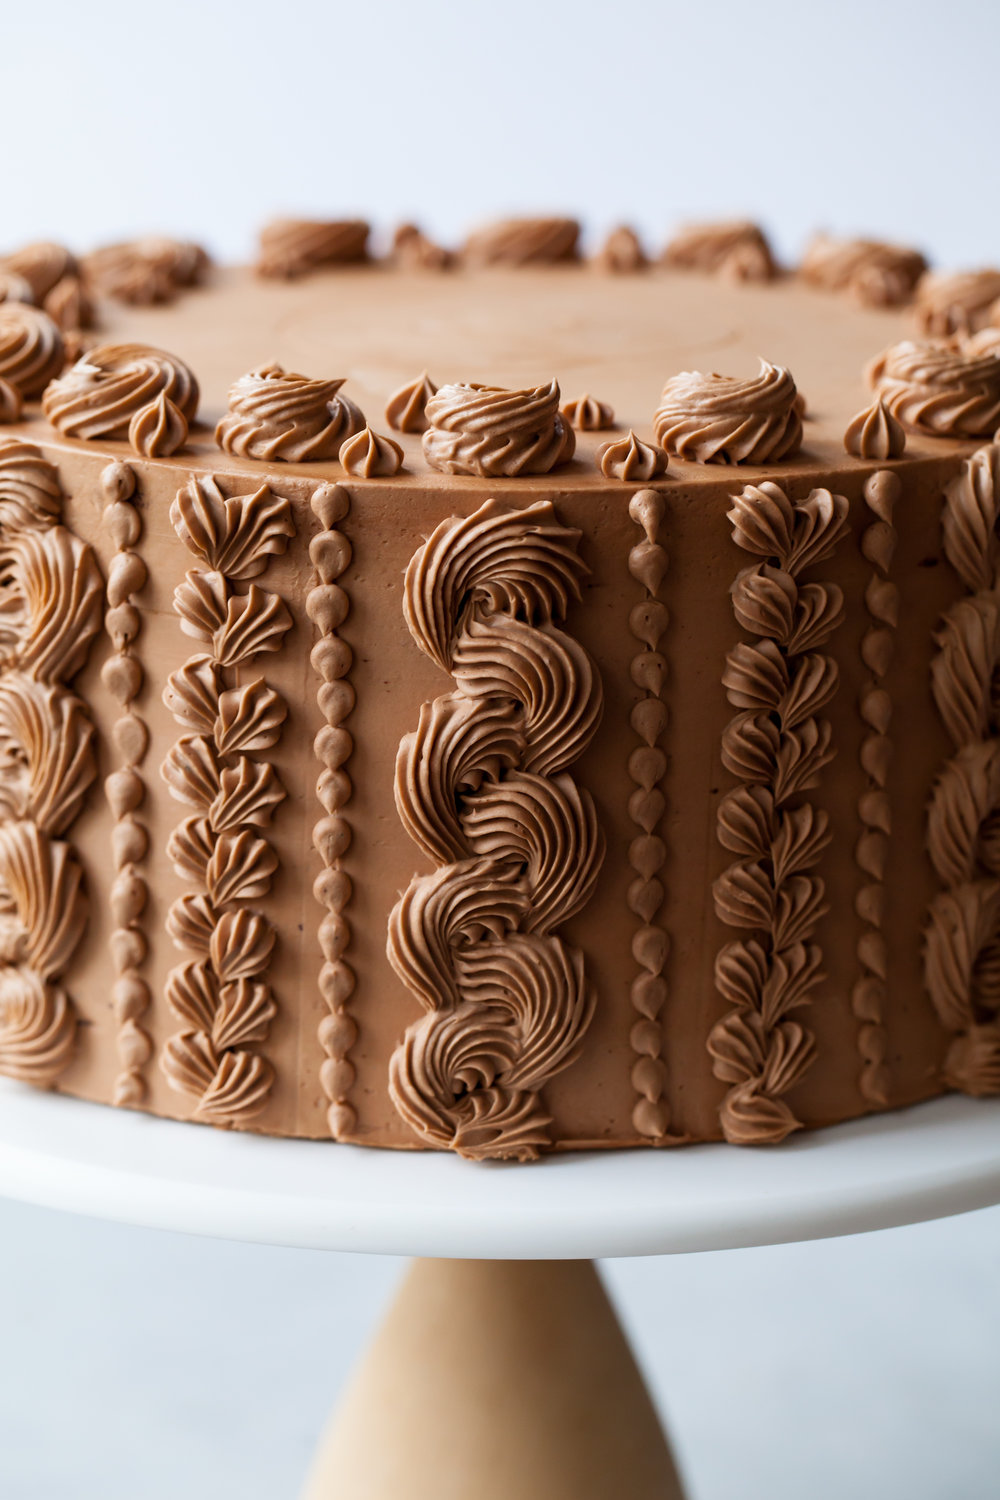 Spiced Chocolate Toffee Crunch Cake